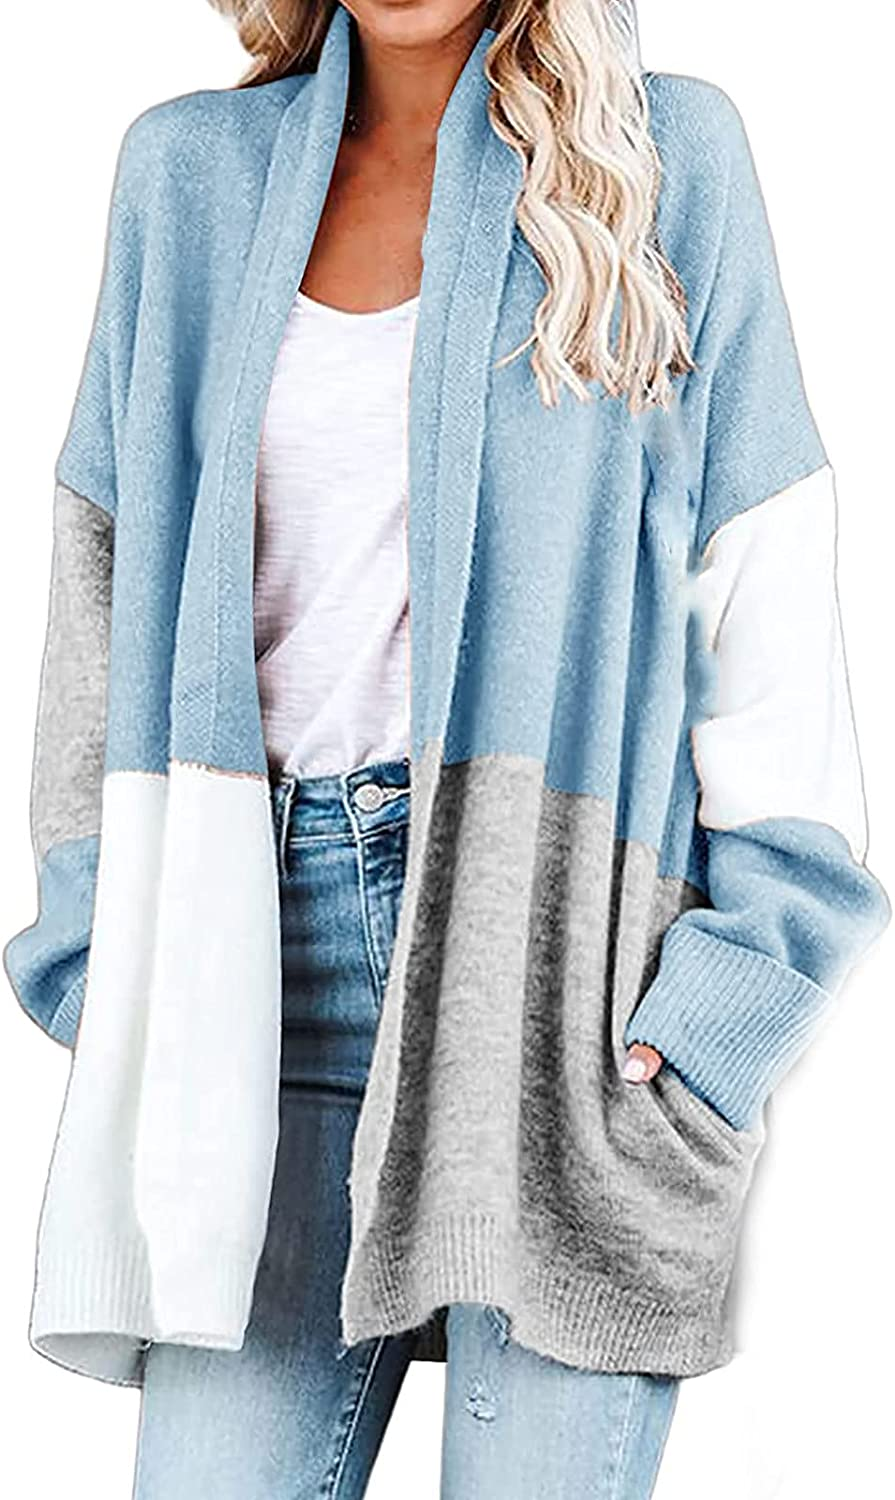 Colorblock Long Knit Cardigan for Women, Womens Casual Open Front Loose Long Sleeve Lightweight Outwear Blouse Top